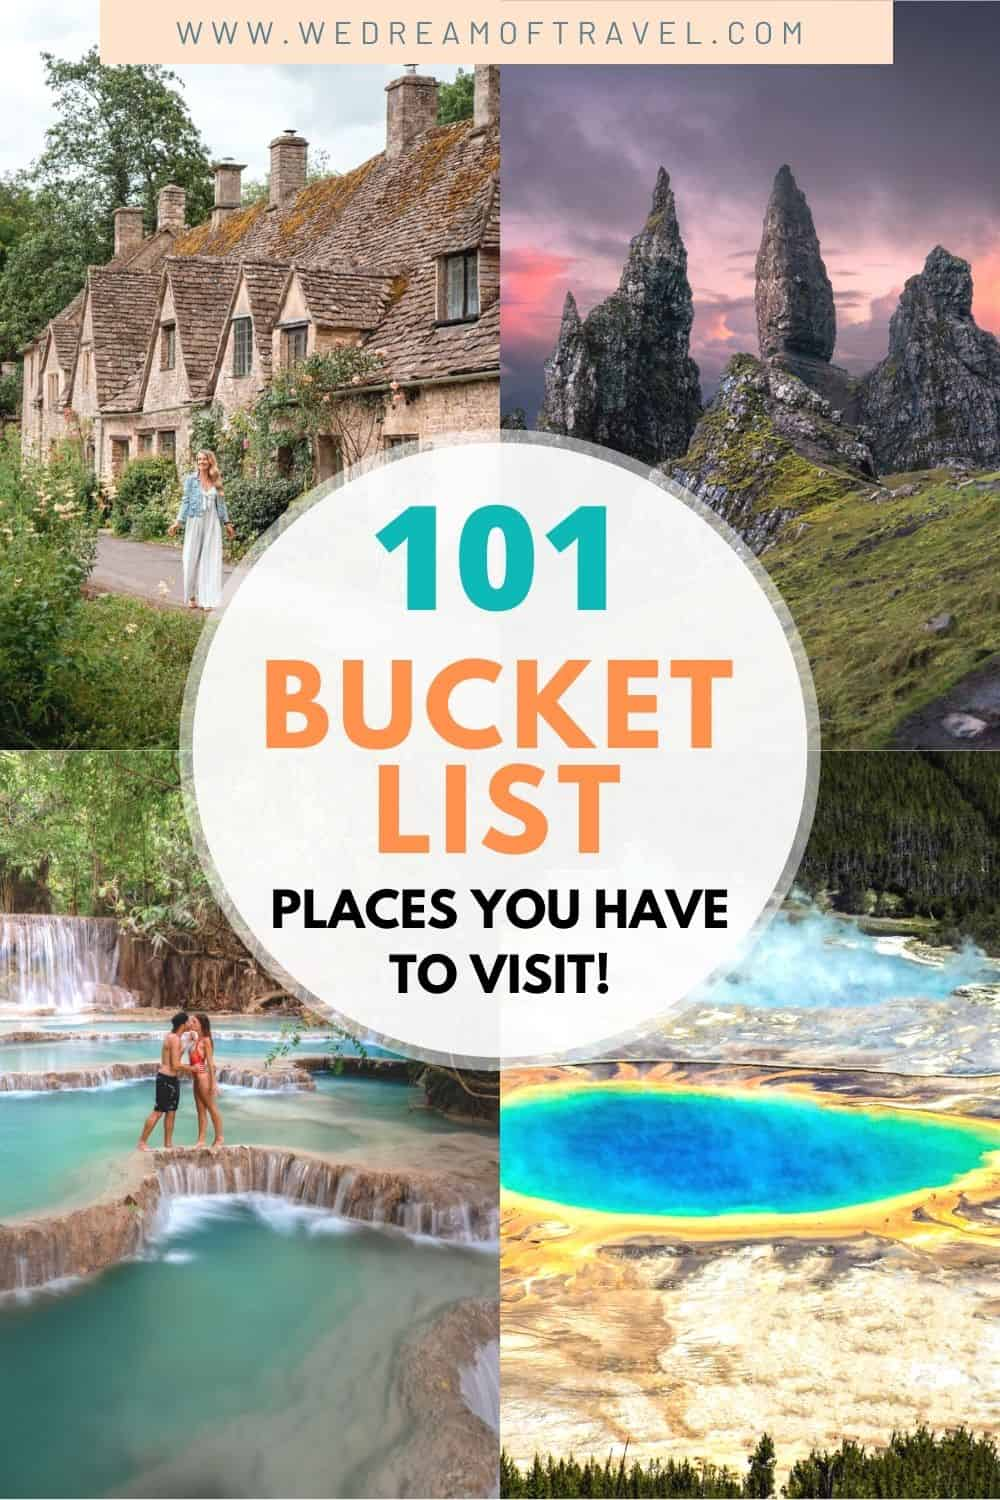 Looking to create your own travel bucket list? Find inspiration and wanderlust with over 101 dream destinations you need to visit at least once in your life. Discover hidden gems as well as iconic landmarks around the globe. Dream Destinations | Travel Bucket List | Travel Inspiration